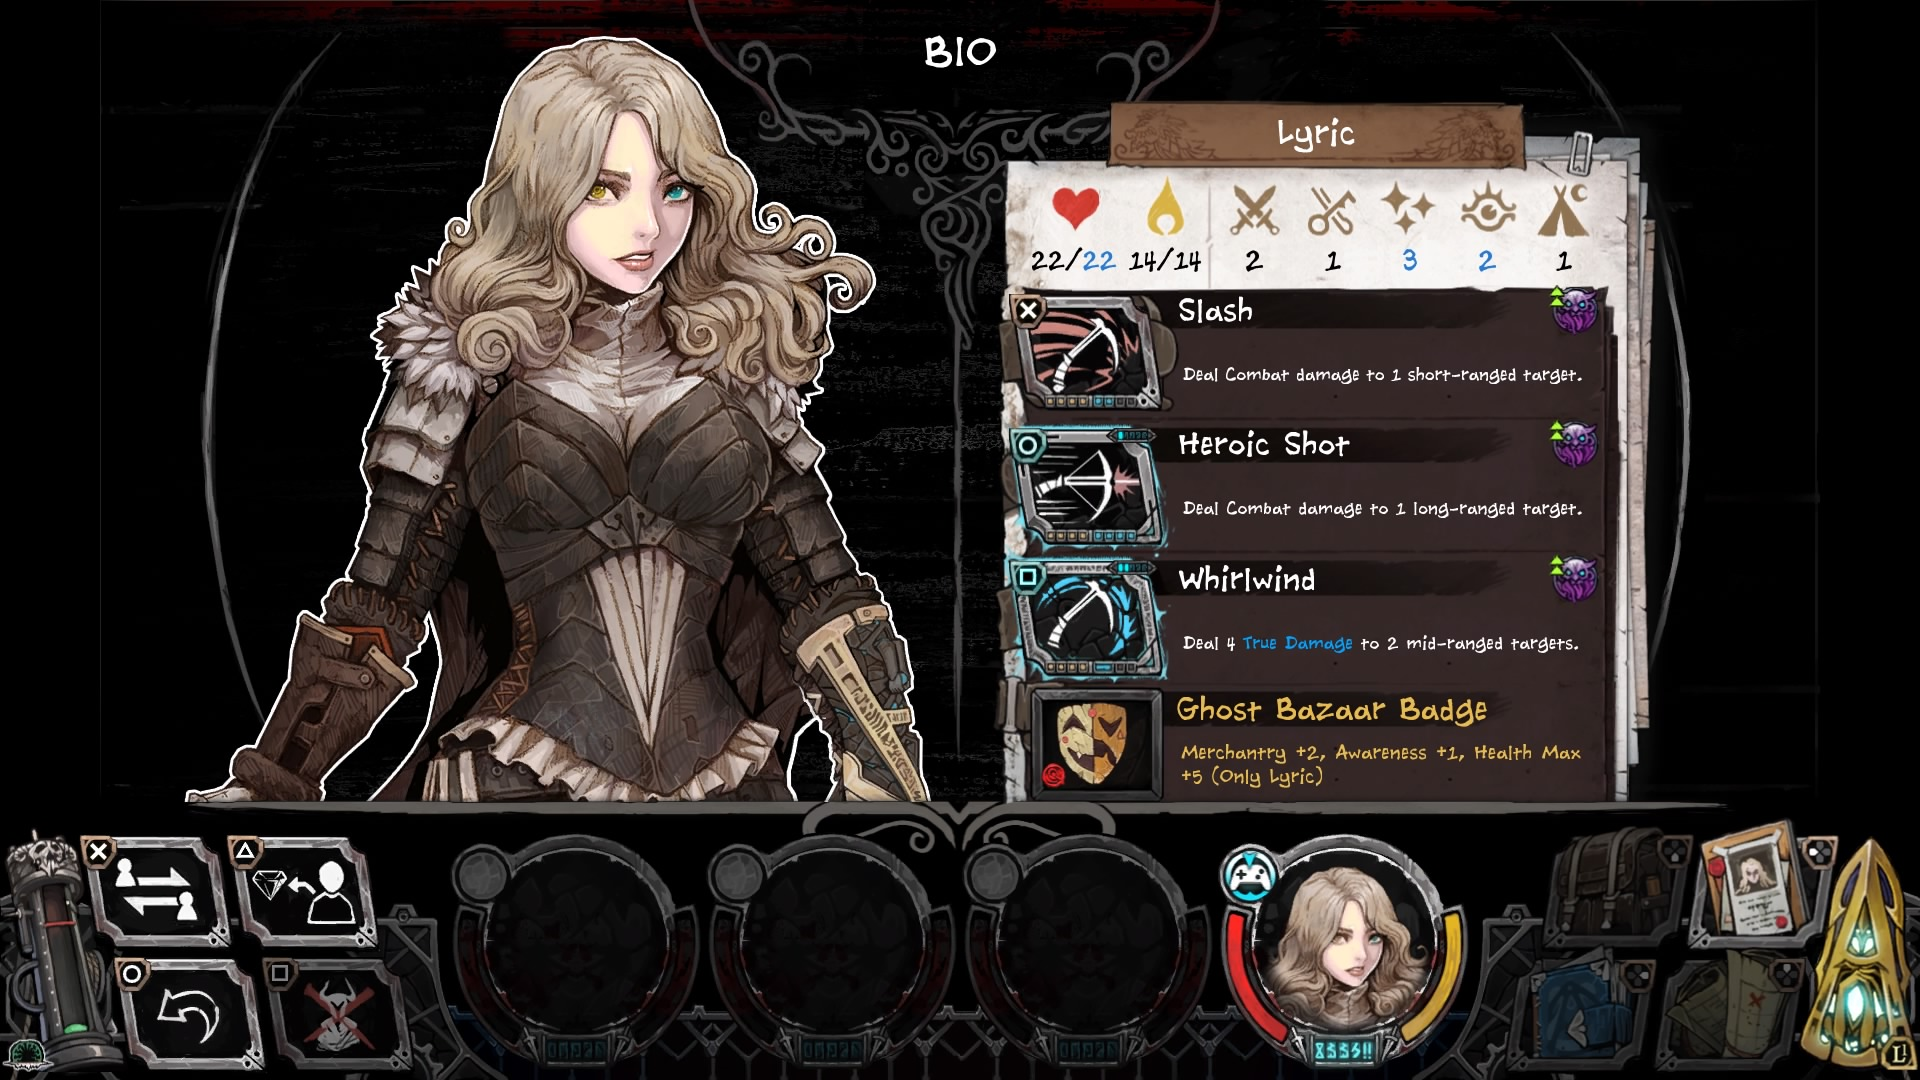 https://www.perfectly-nintendo.com/wp-content/uploads/sites/1/nggallery/vambrace-13-08-2019/2.jpg